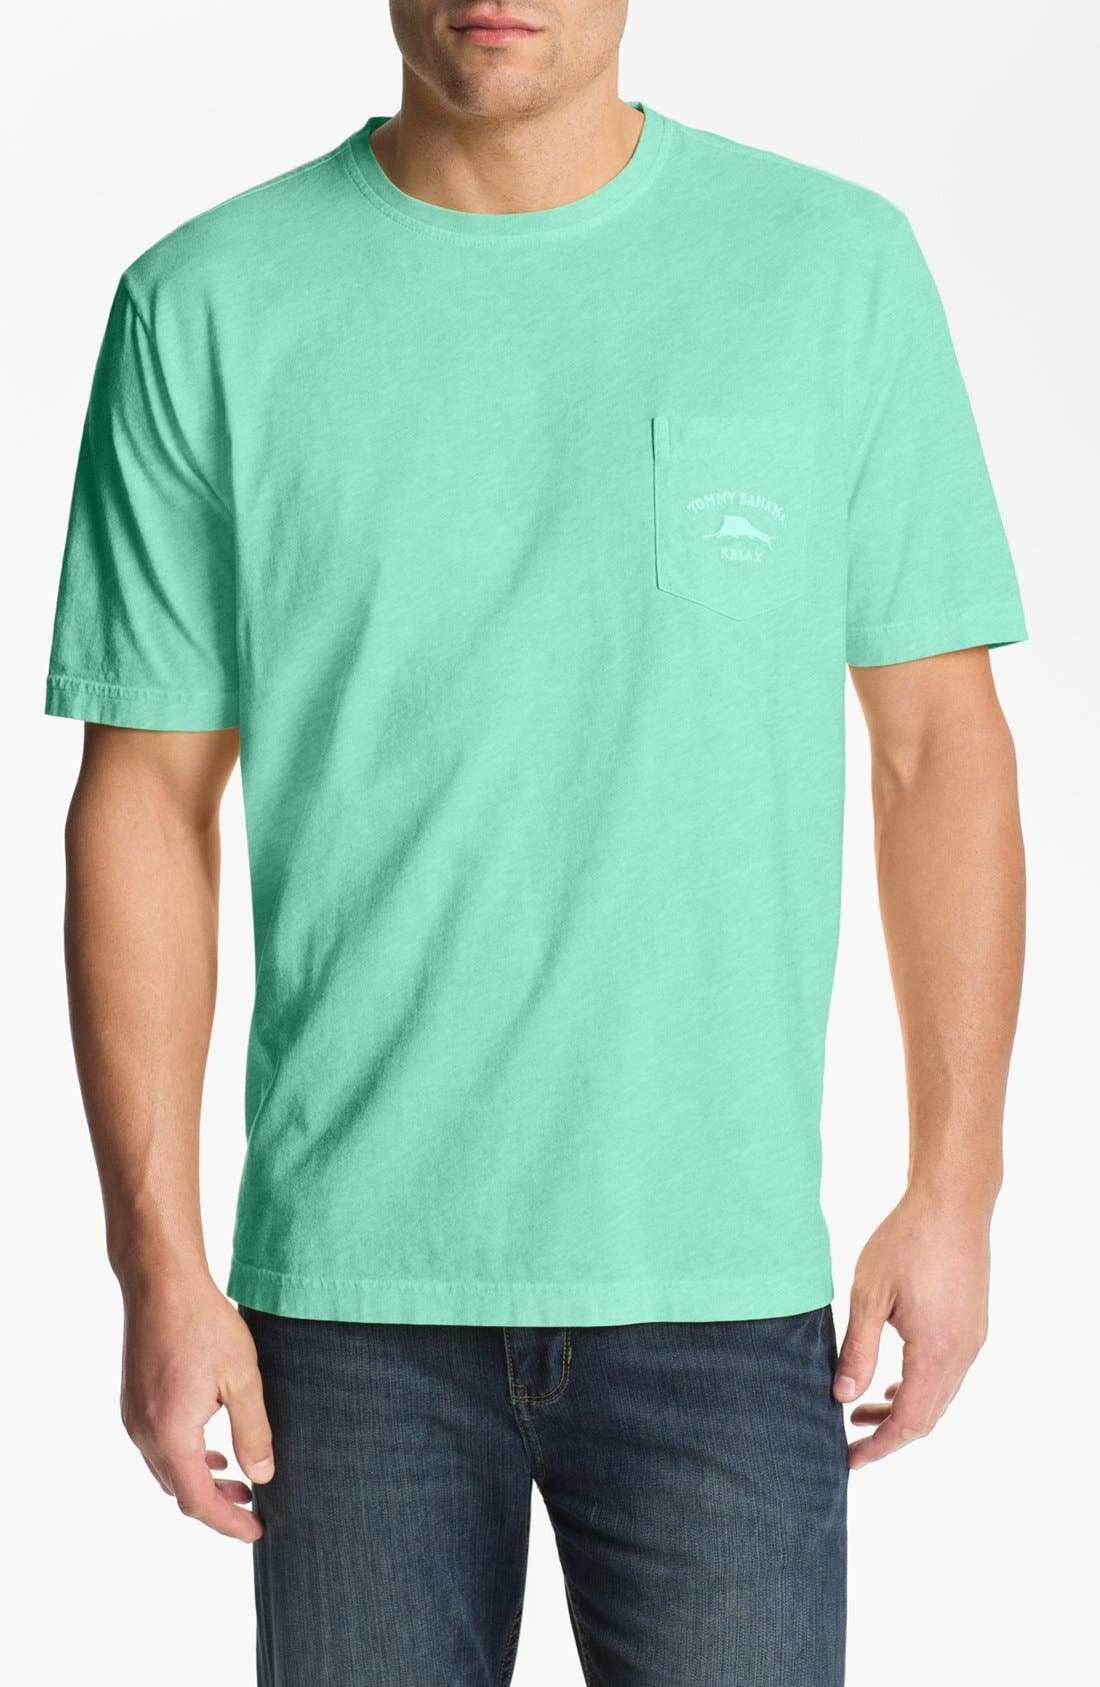 Alternate Image 1 Selected - Tommy Bahama 'Bahama Tide' T-Shirt (Big & Tall)